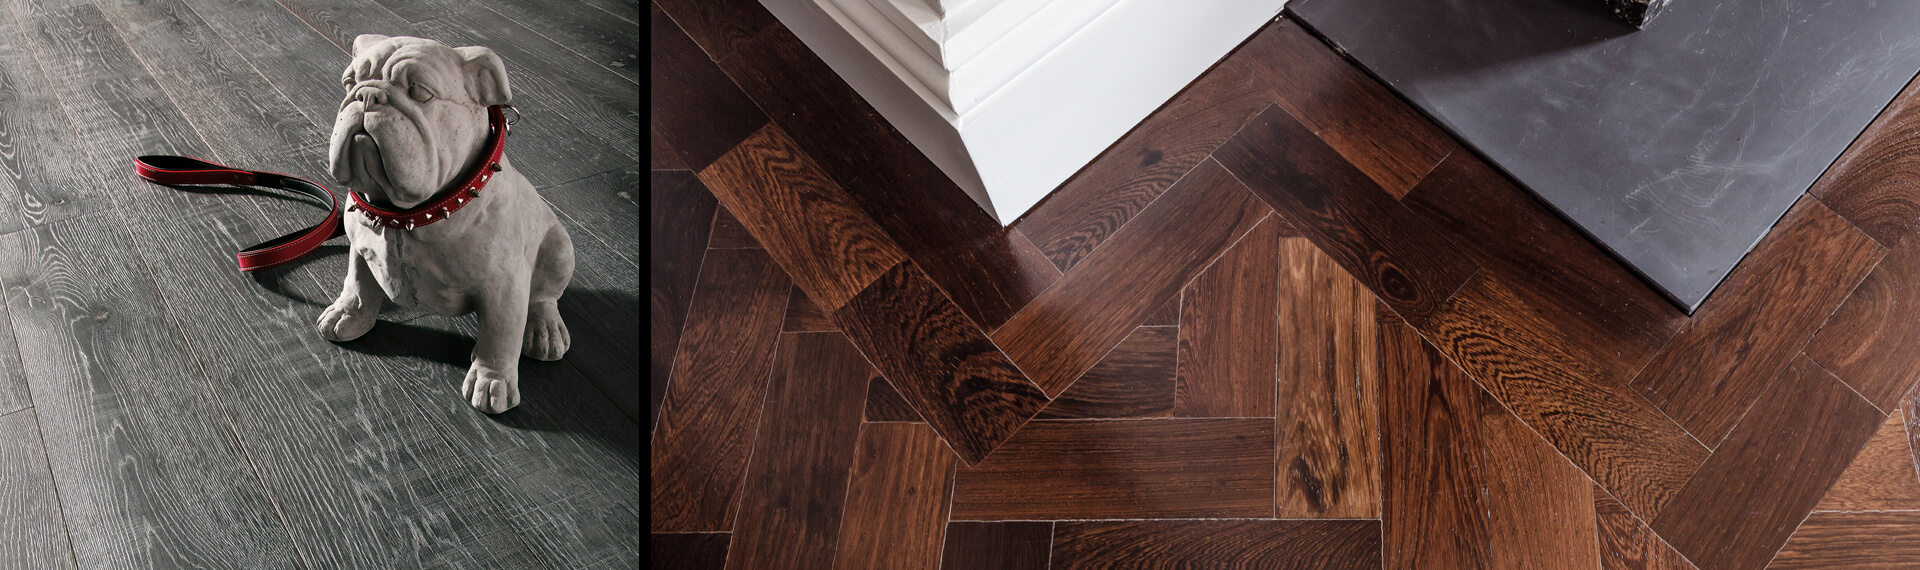 Dublin Solid Wooden Floors | Floor Restoration | Floor Sanding Dublin